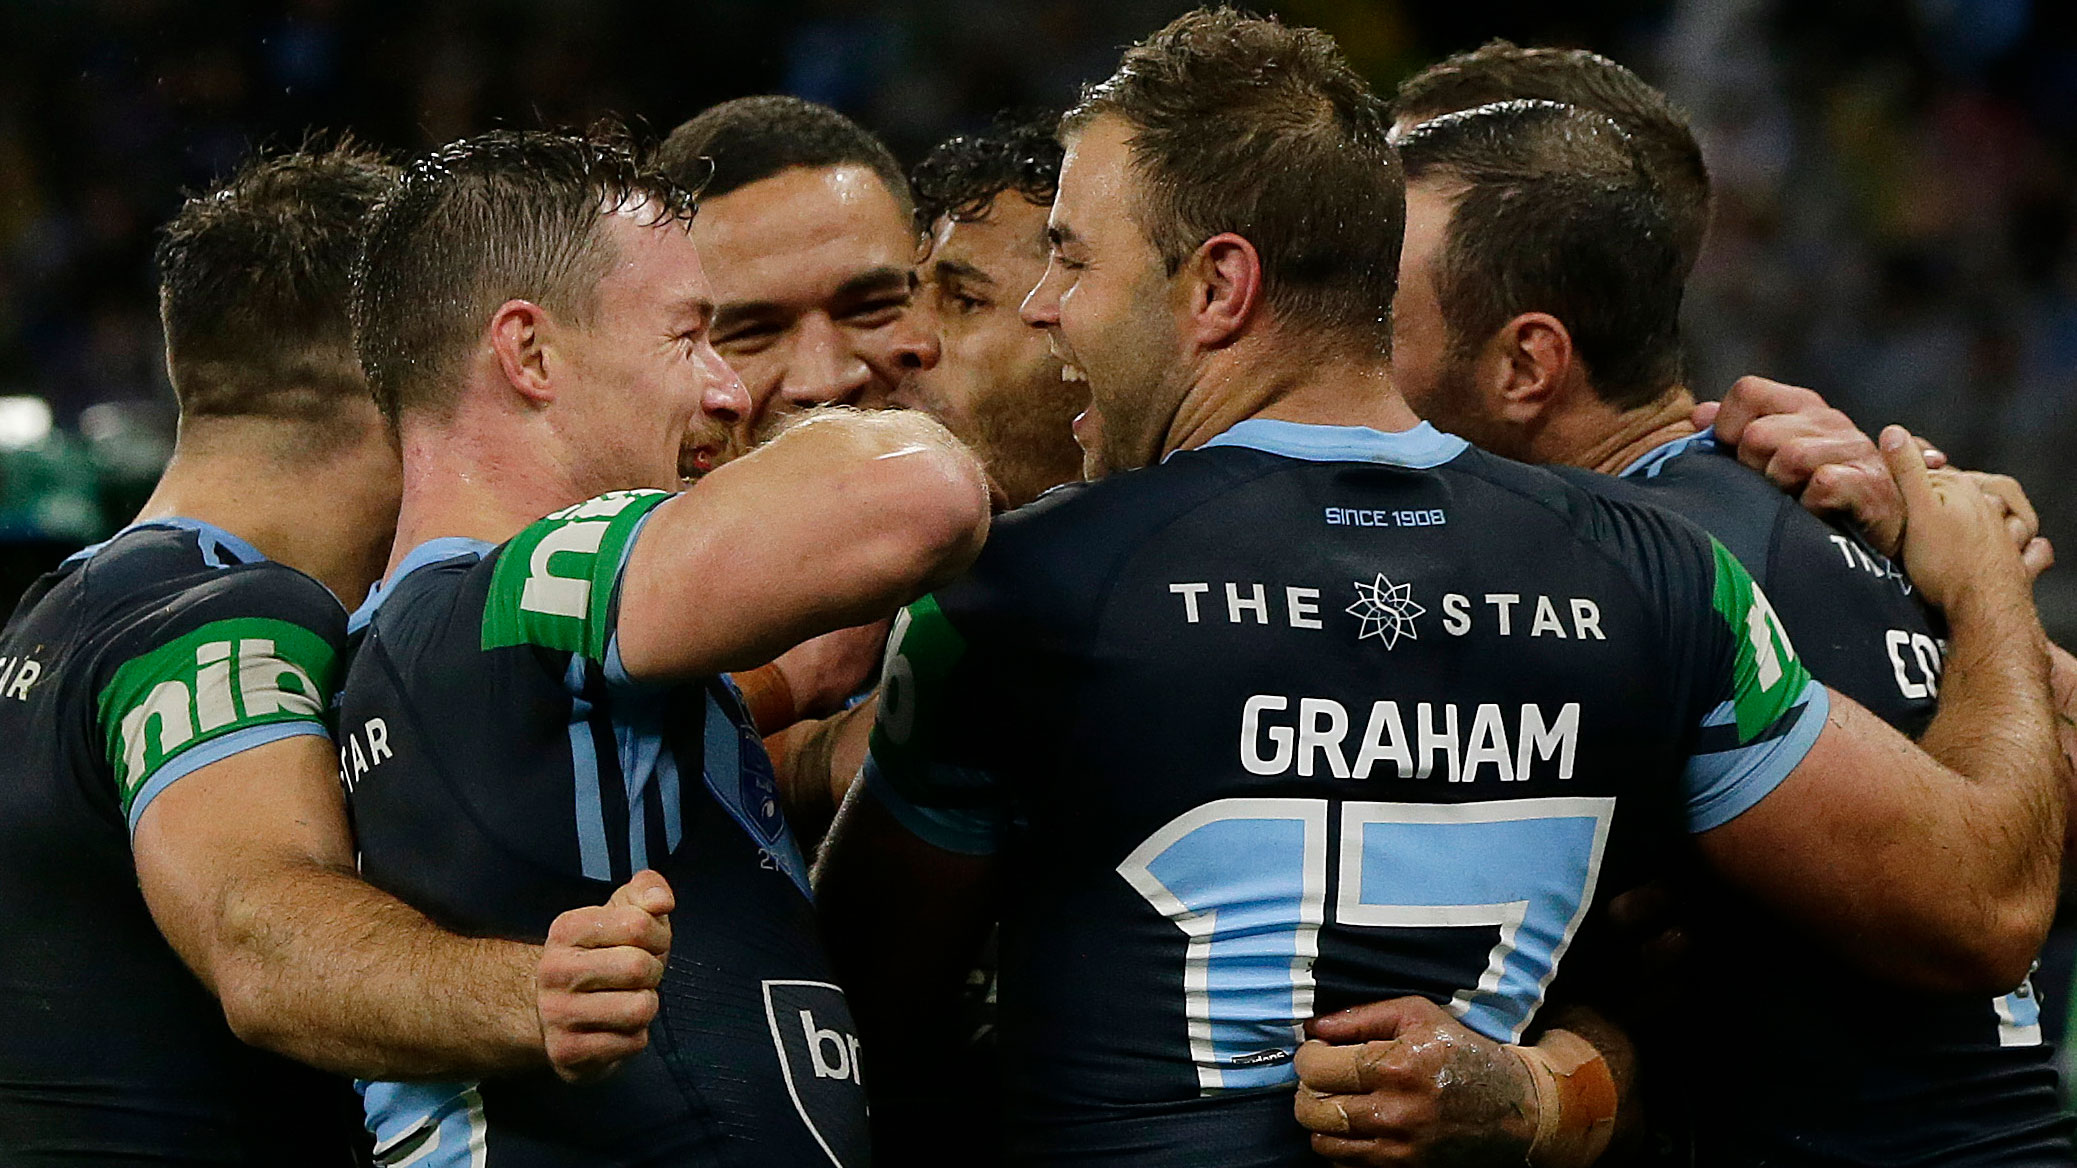 Wade Graham and the NSW team celebrates.